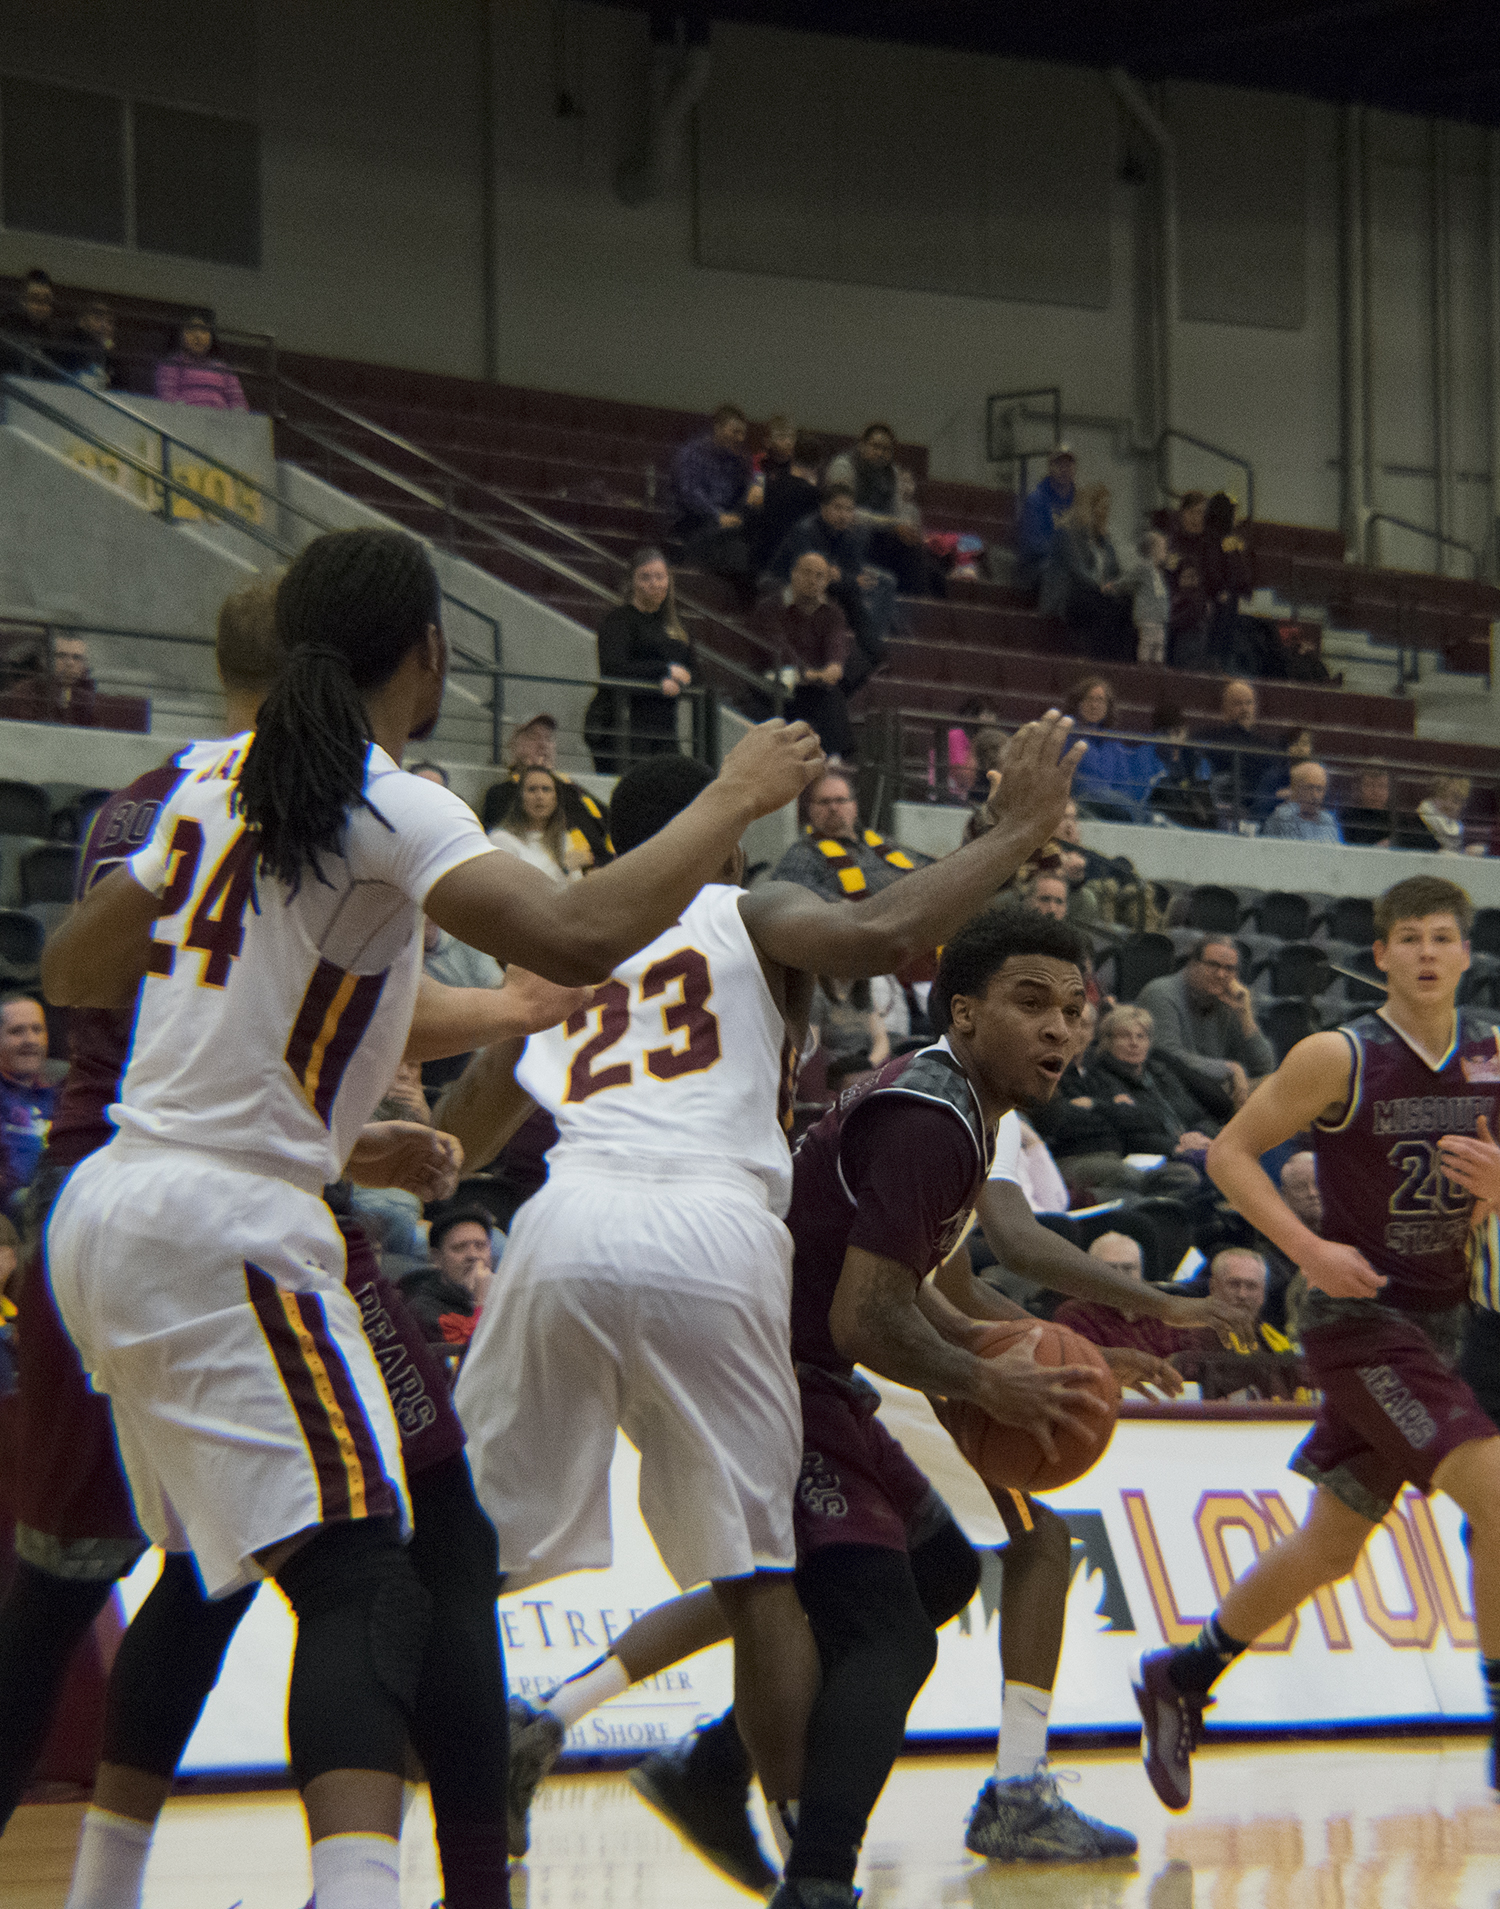 Miller's game-winning floater drops Loyola to 0-4 in ...